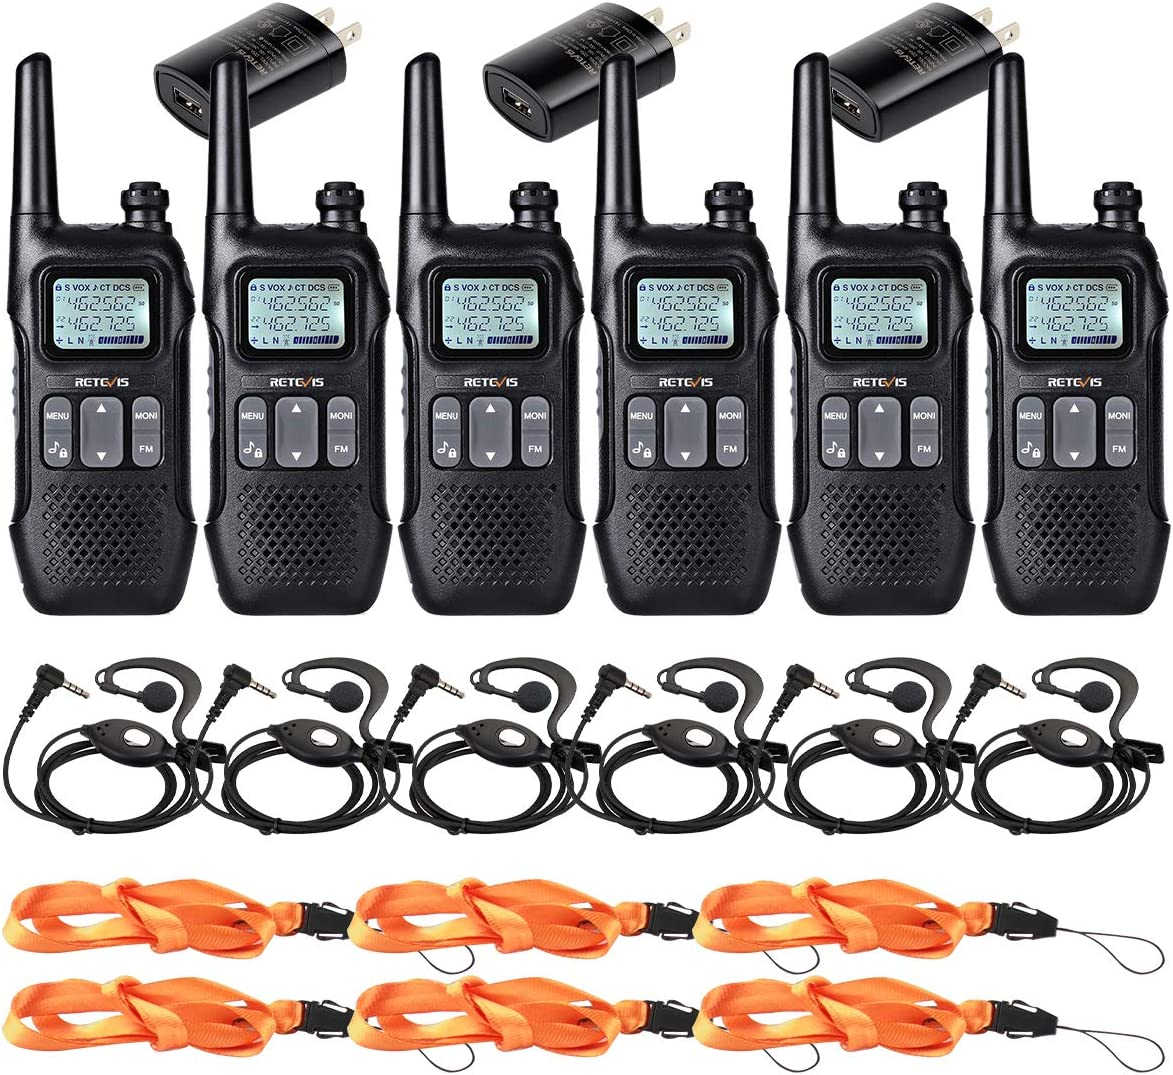 Retevis RT16 Walkie Talkie for Adult Long Range Two Way Radio NOAA Emergency Dual Watch Flashlight FM USB VOX 2 Way Radio with Earpiece(6 Pack)